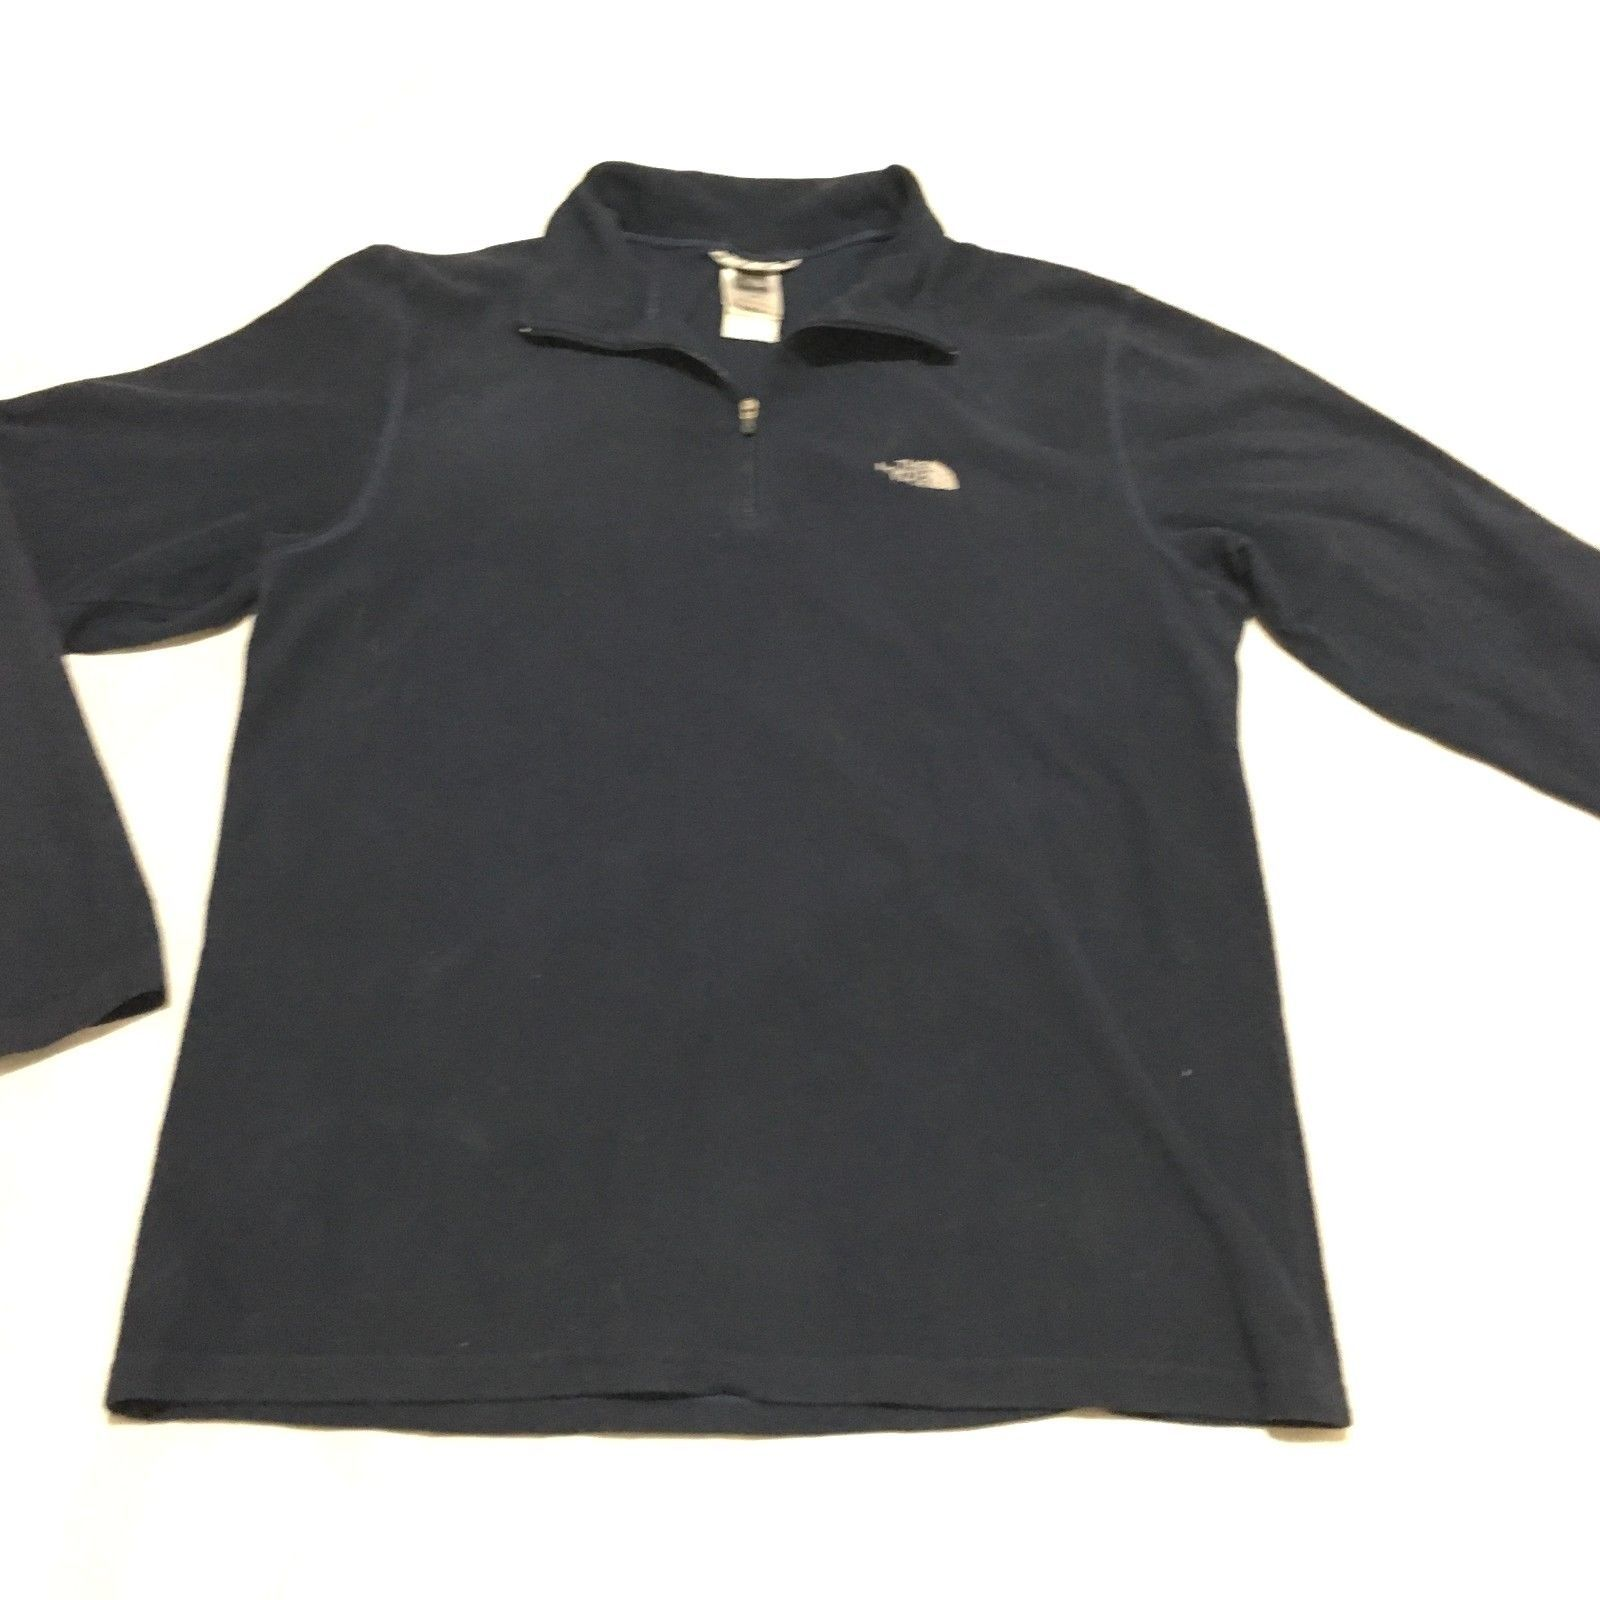 db77730c4 The North Face TKA 100 Men's Blue Fleece 1/4 and 50 similar items